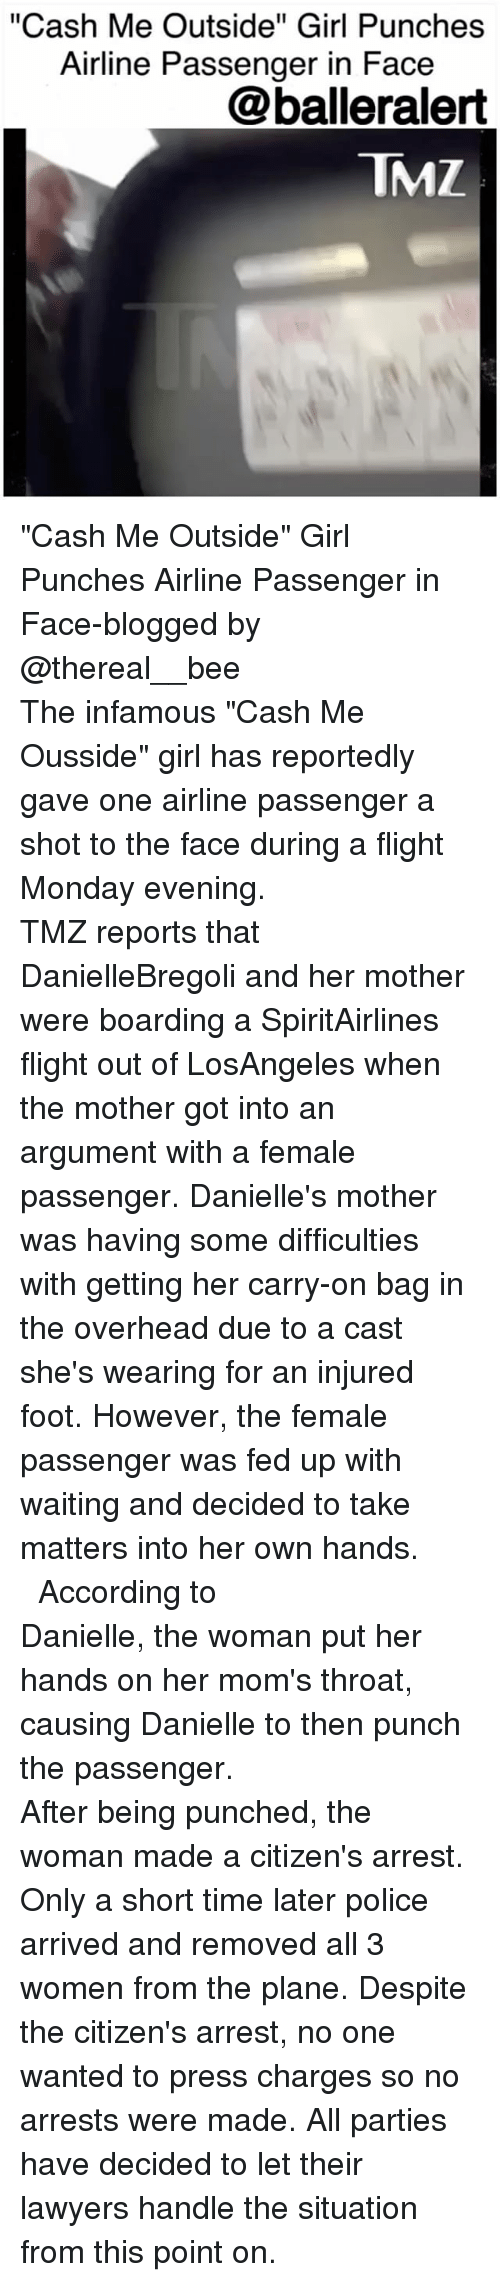 "3 women: ""Cash Me Outside"" Girl Punches  Airline Passenger in Face  @balleralert  TMZ ""Cash Me Outside"" Girl Punches Airline Passenger in Face-blogged by @thereal__bee ⠀⠀⠀⠀⠀⠀⠀⠀⠀ ⠀⠀⠀⠀⠀⠀⠀⠀⠀ The infamous ""Cash Me Ousside"" girl has reportedly gave one airline passenger a shot to the face during a flight Monday evening. ⠀⠀⠀⠀⠀⠀⠀⠀⠀ ⠀⠀⠀⠀⠀⠀⠀⠀⠀ TMZ reports that DanielleBregoli and her mother were boarding a SpiritAirlines flight out of LosAngeles when the mother got into an argument with a female passenger. Danielle's mother was having some difficulties with getting her carry-on bag in the overhead due to a cast she's wearing for an injured foot. However, the female passenger was fed up with waiting and decided to take matters into her own hands. ⠀⠀⠀⠀⠀⠀⠀⠀⠀ ⠀⠀⠀⠀⠀⠀⠀⠀⠀ According to Danielle, the woman put her hands on her mom's throat, causing Danielle to then punch the passenger. ⠀⠀⠀⠀⠀⠀⠀⠀⠀ ⠀⠀⠀⠀⠀⠀⠀⠀⠀ After being punched, the woman made a citizen's arrest. Only a short time later police arrived and removed all 3 women from the plane. Despite the citizen's arrest, no one wanted to press charges so no arrests were made. All parties have decided to let their lawyers handle the situation from this point on."